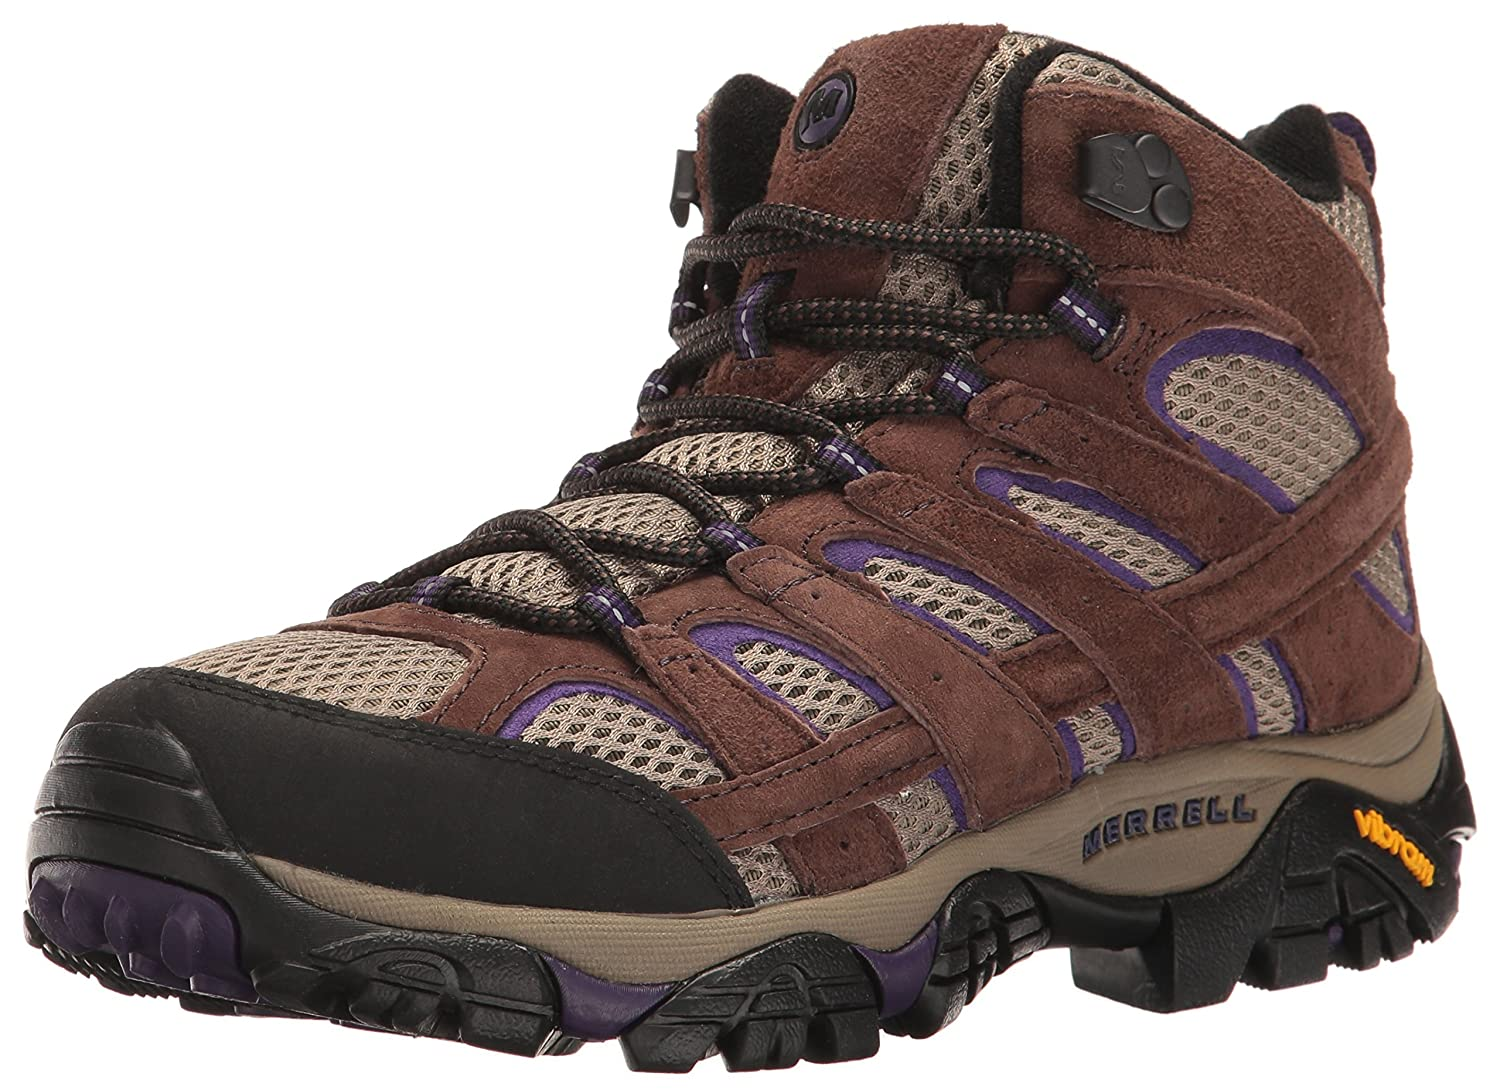 Merrell Women's Moab 2 Vent Mid Hiking Boot B01HFMZZL4 10.5 W US|Bracken/Purple